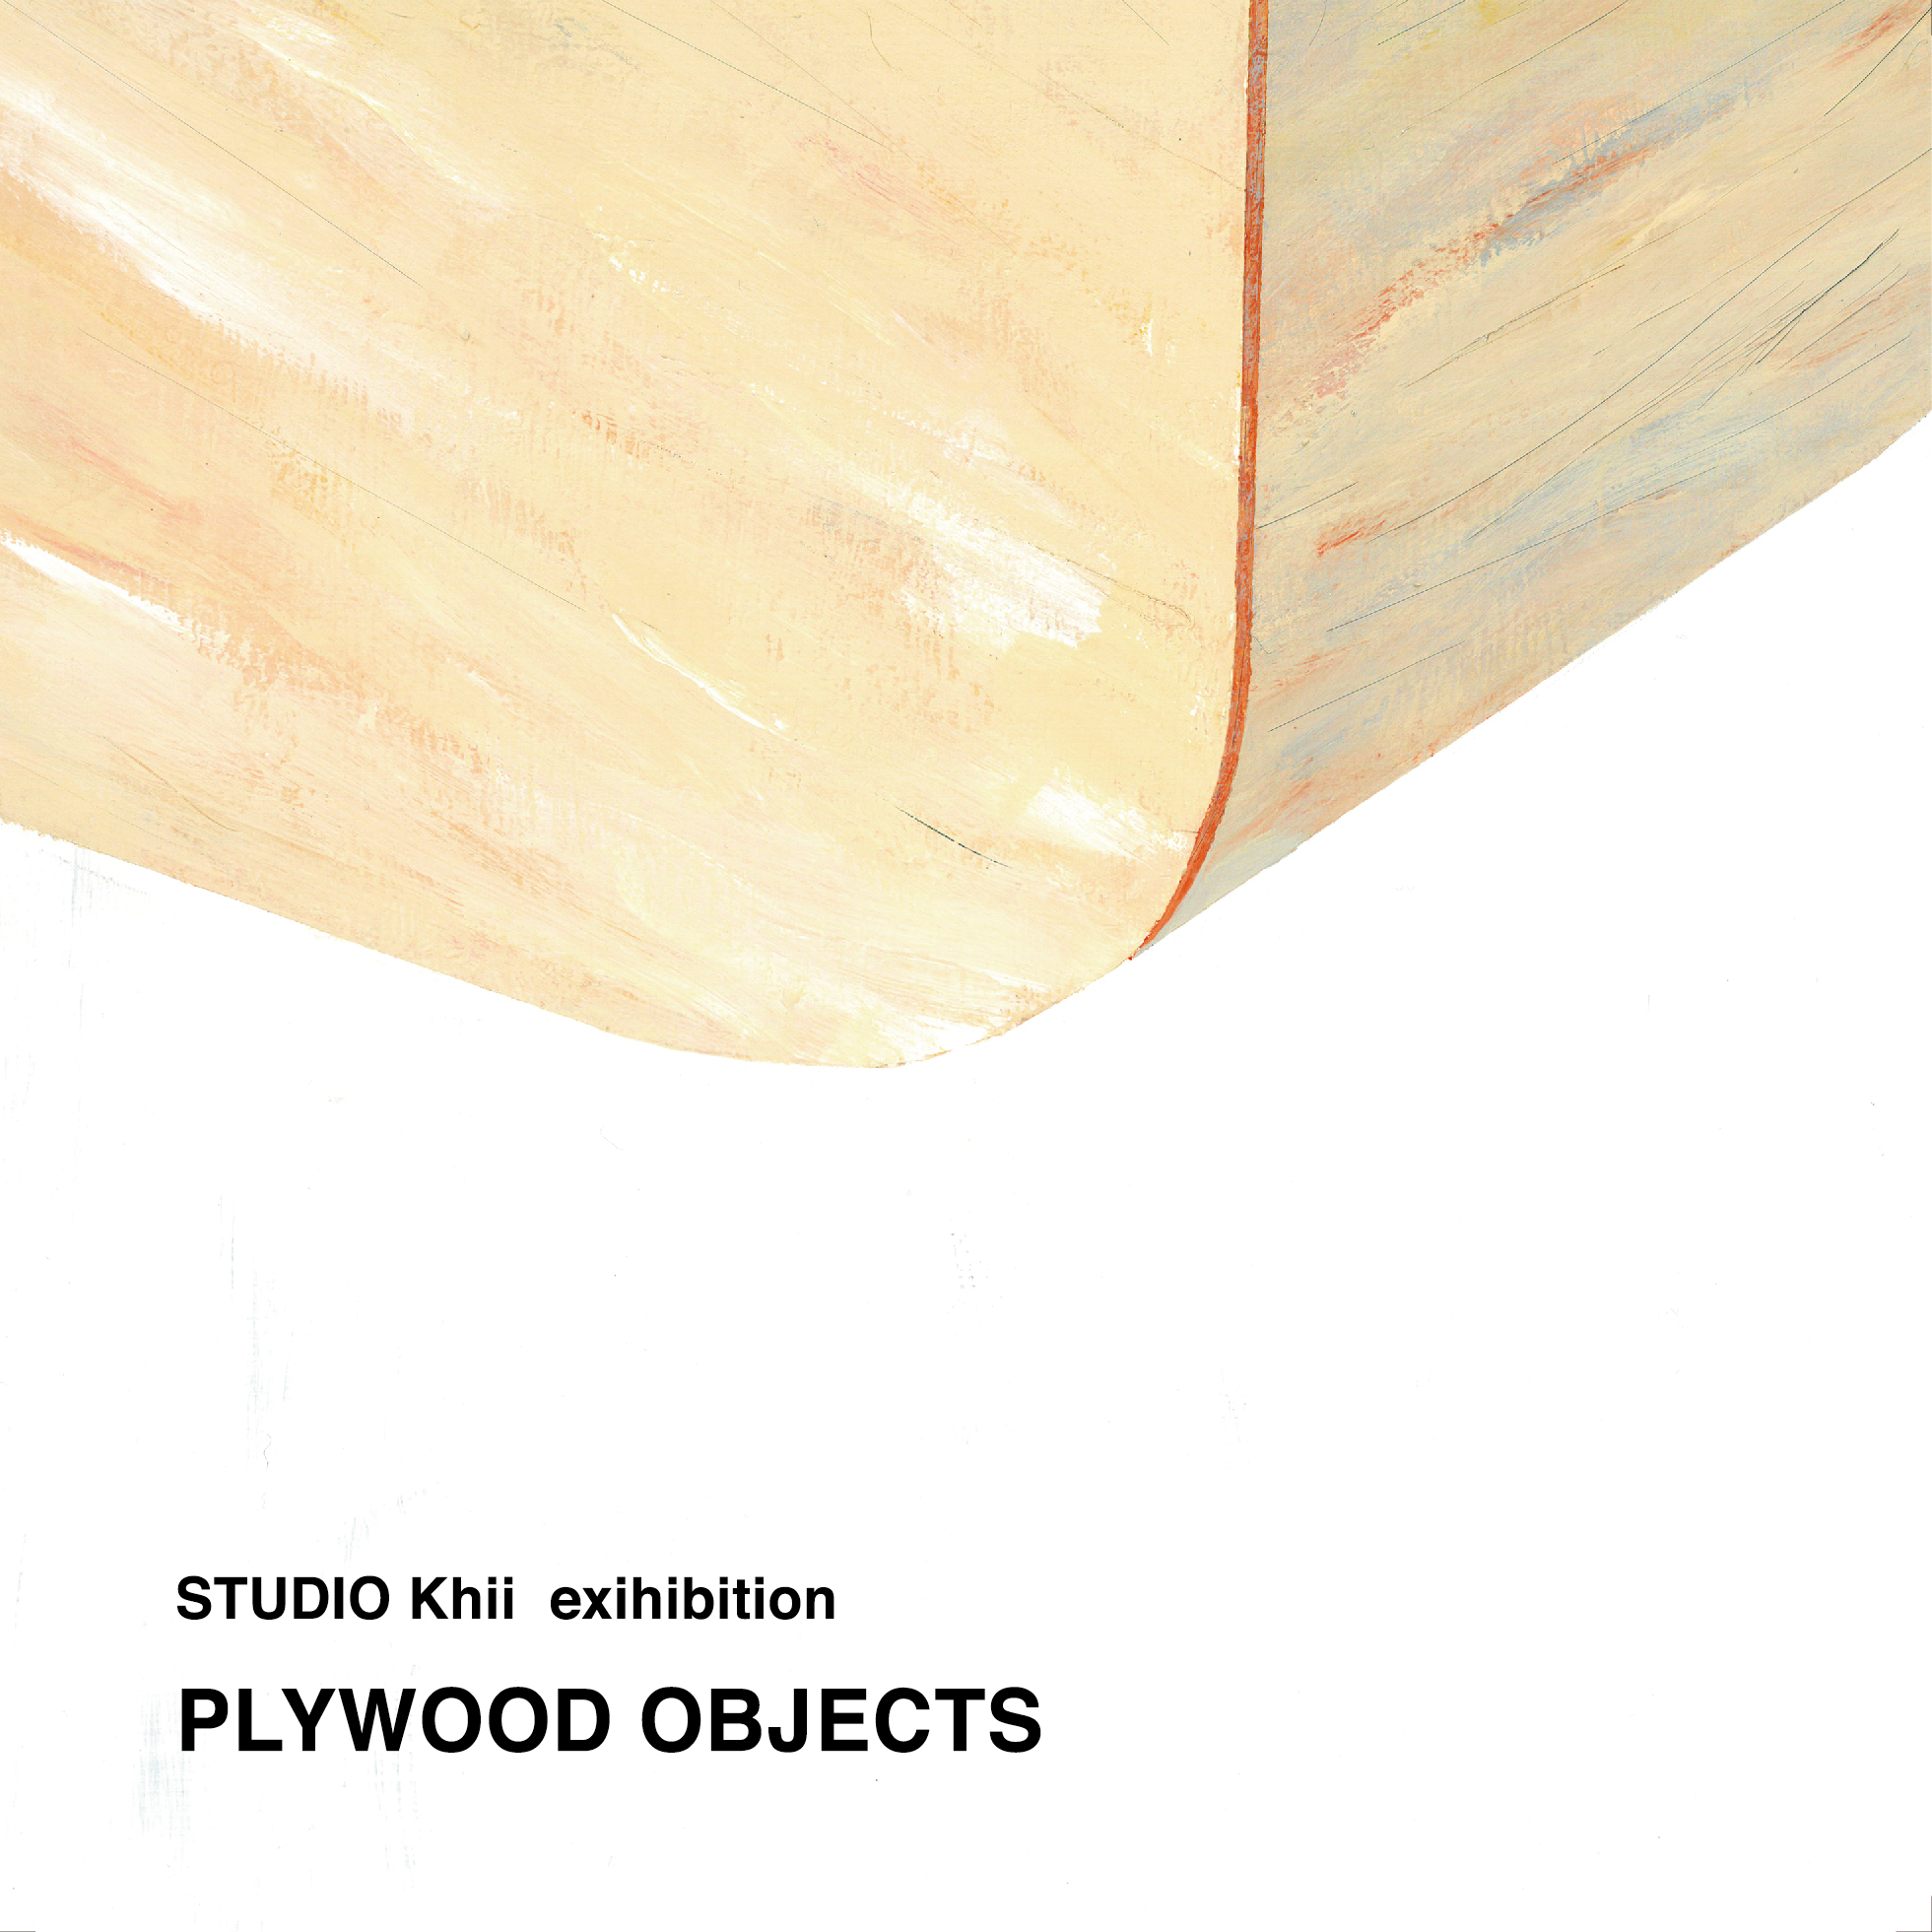 STUDIO Khii exhibition「PLYWOOD OBJECTS」